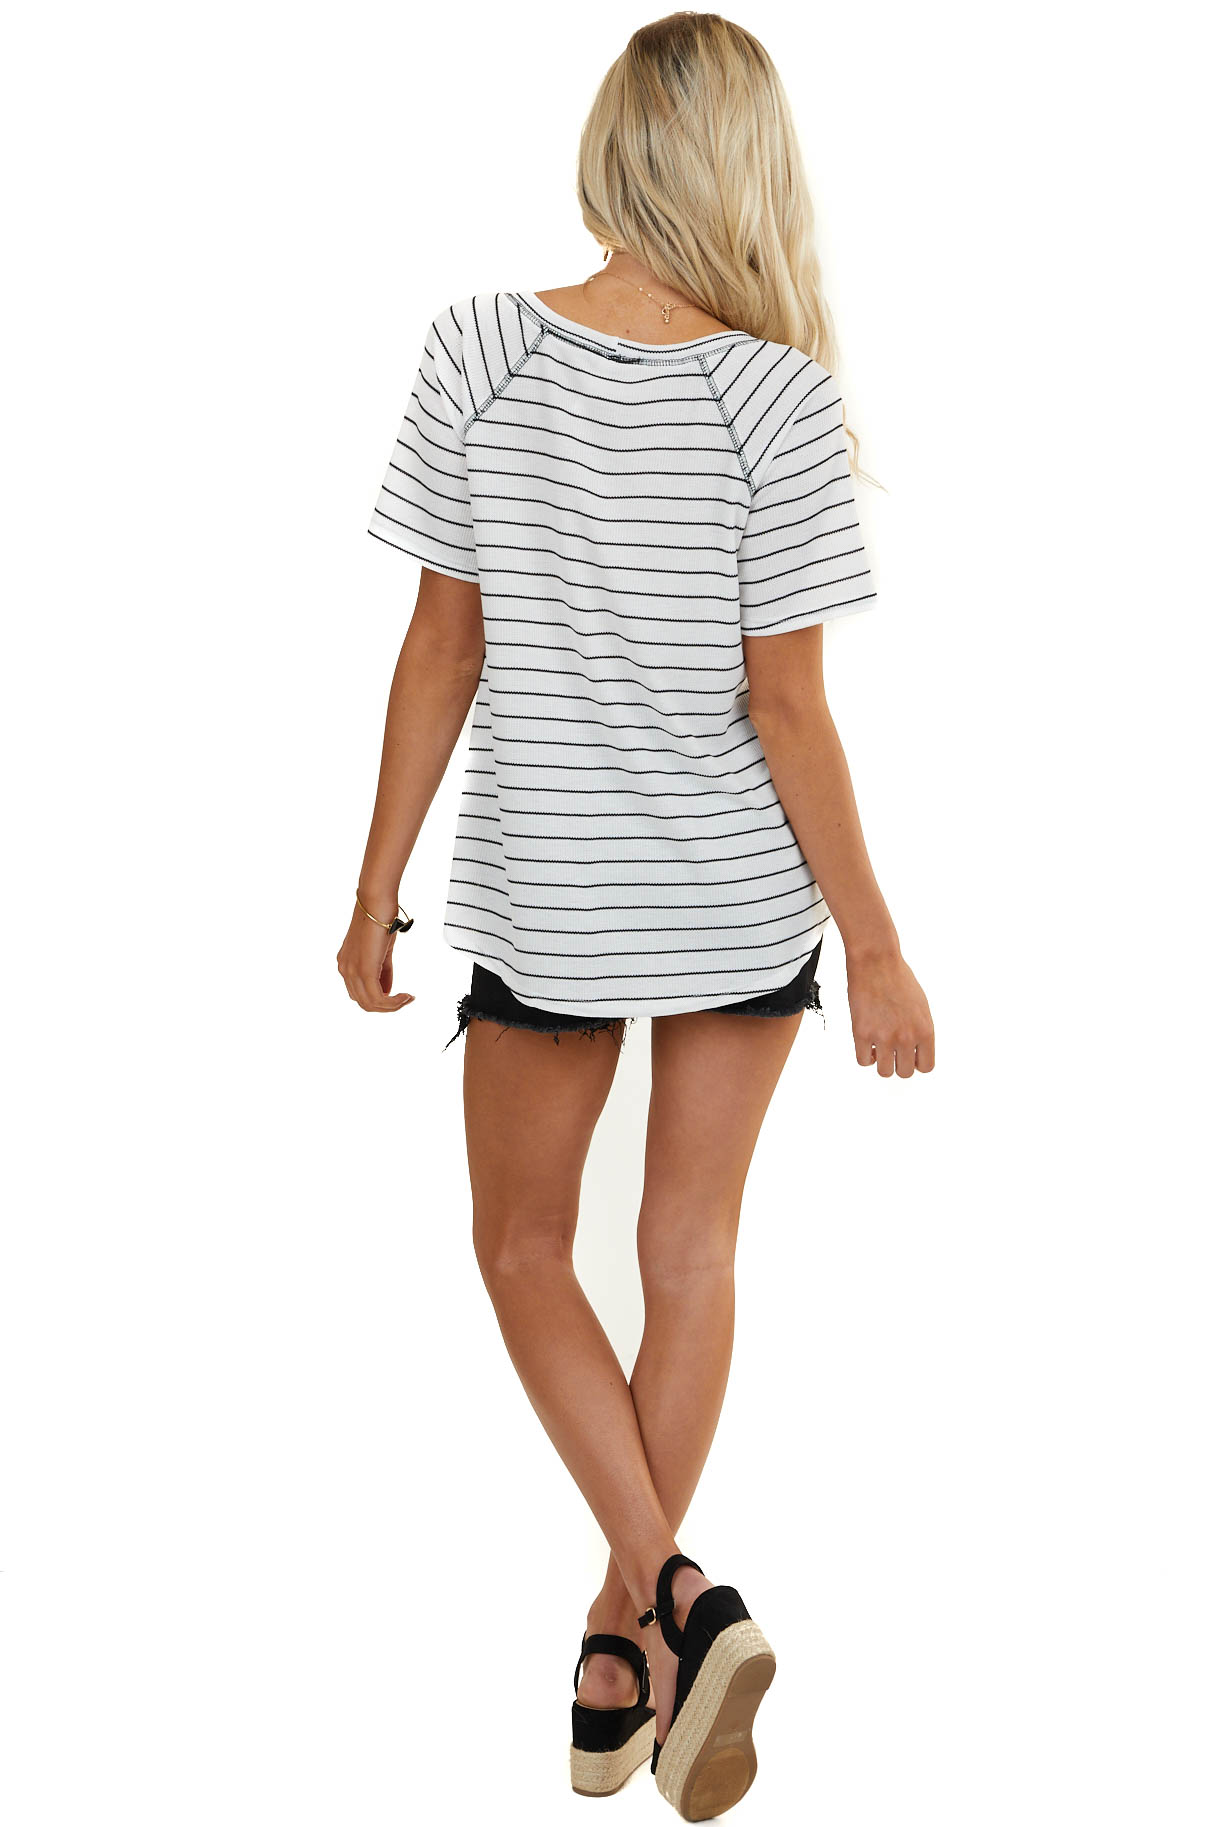 White and Black Striped Print Knit Top with Side Pockets